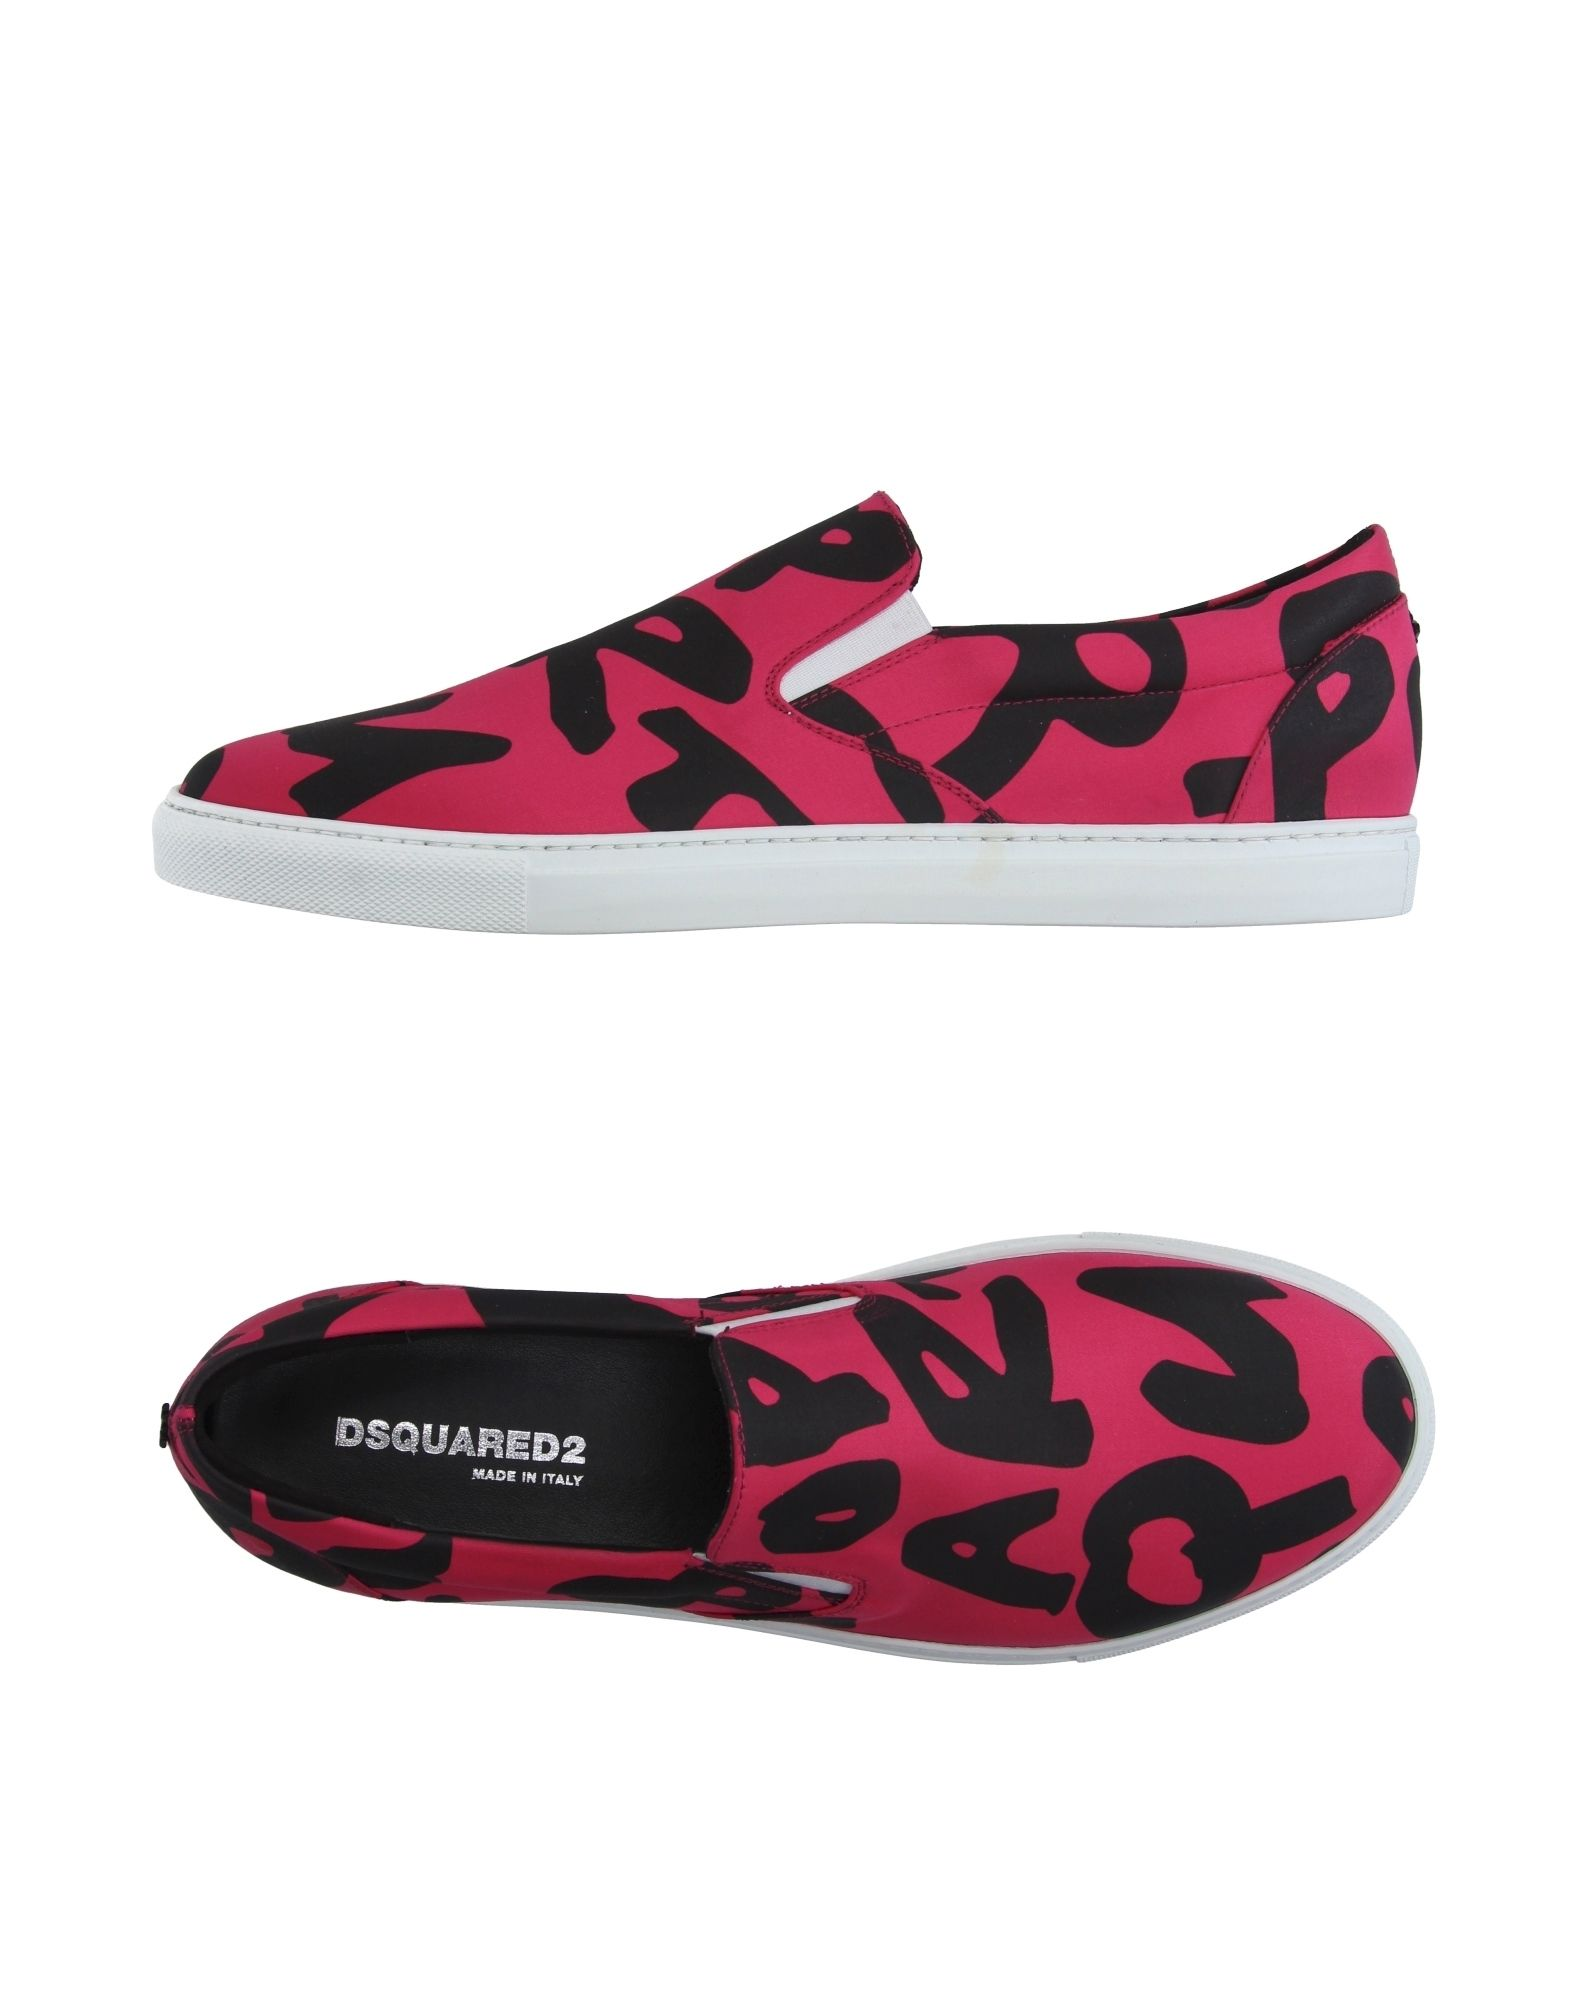 Dsquared2 Sneakers - Men Dsquared2 Sneakers online on    Australia - 44971559CD b41a35